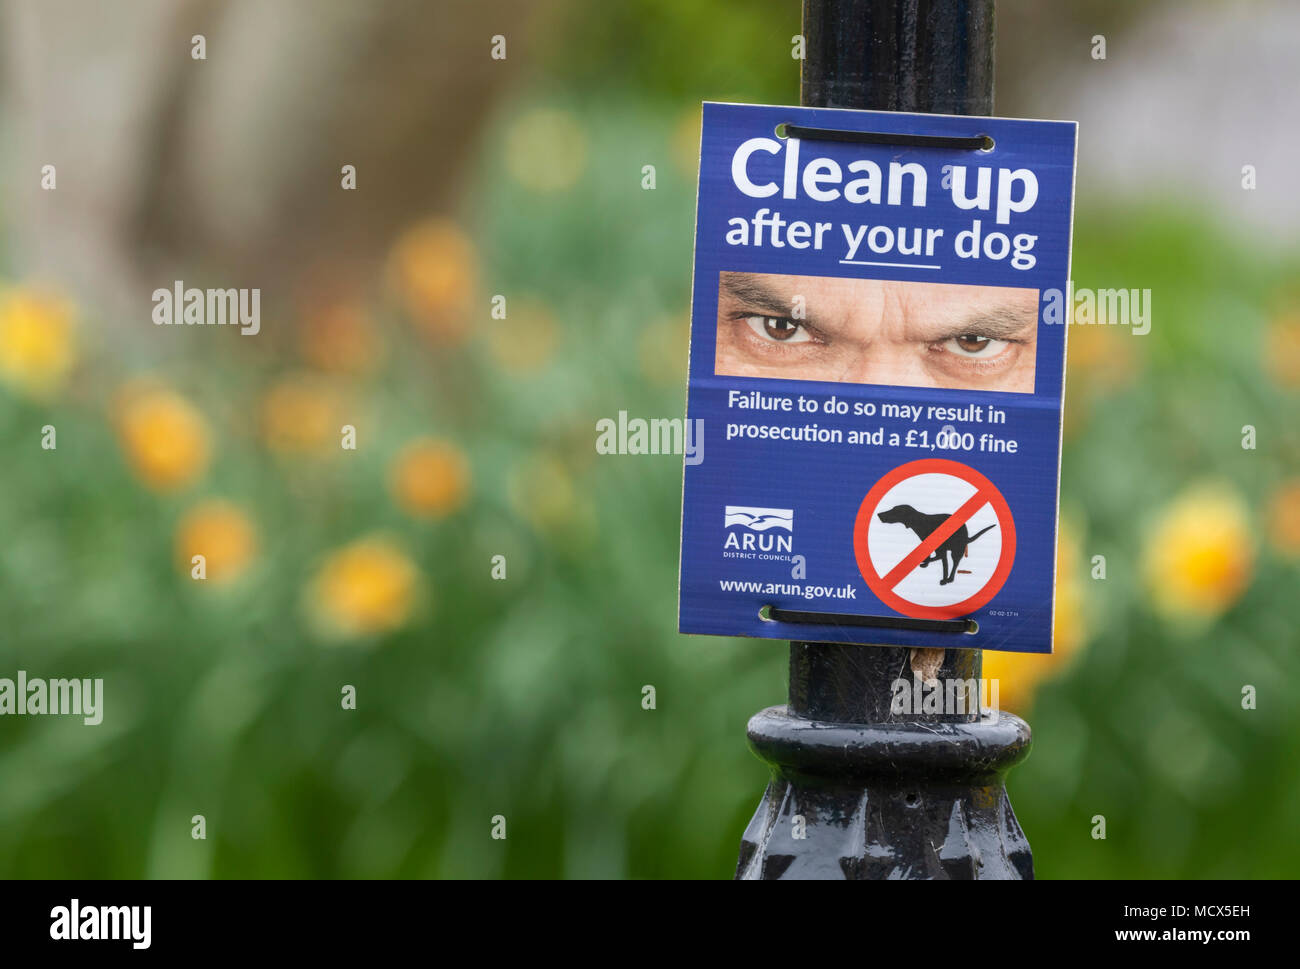 Council warning sign to clean up after your dog does a poo, in Littlehampton, West Sussex, England, UK. - Stock Image